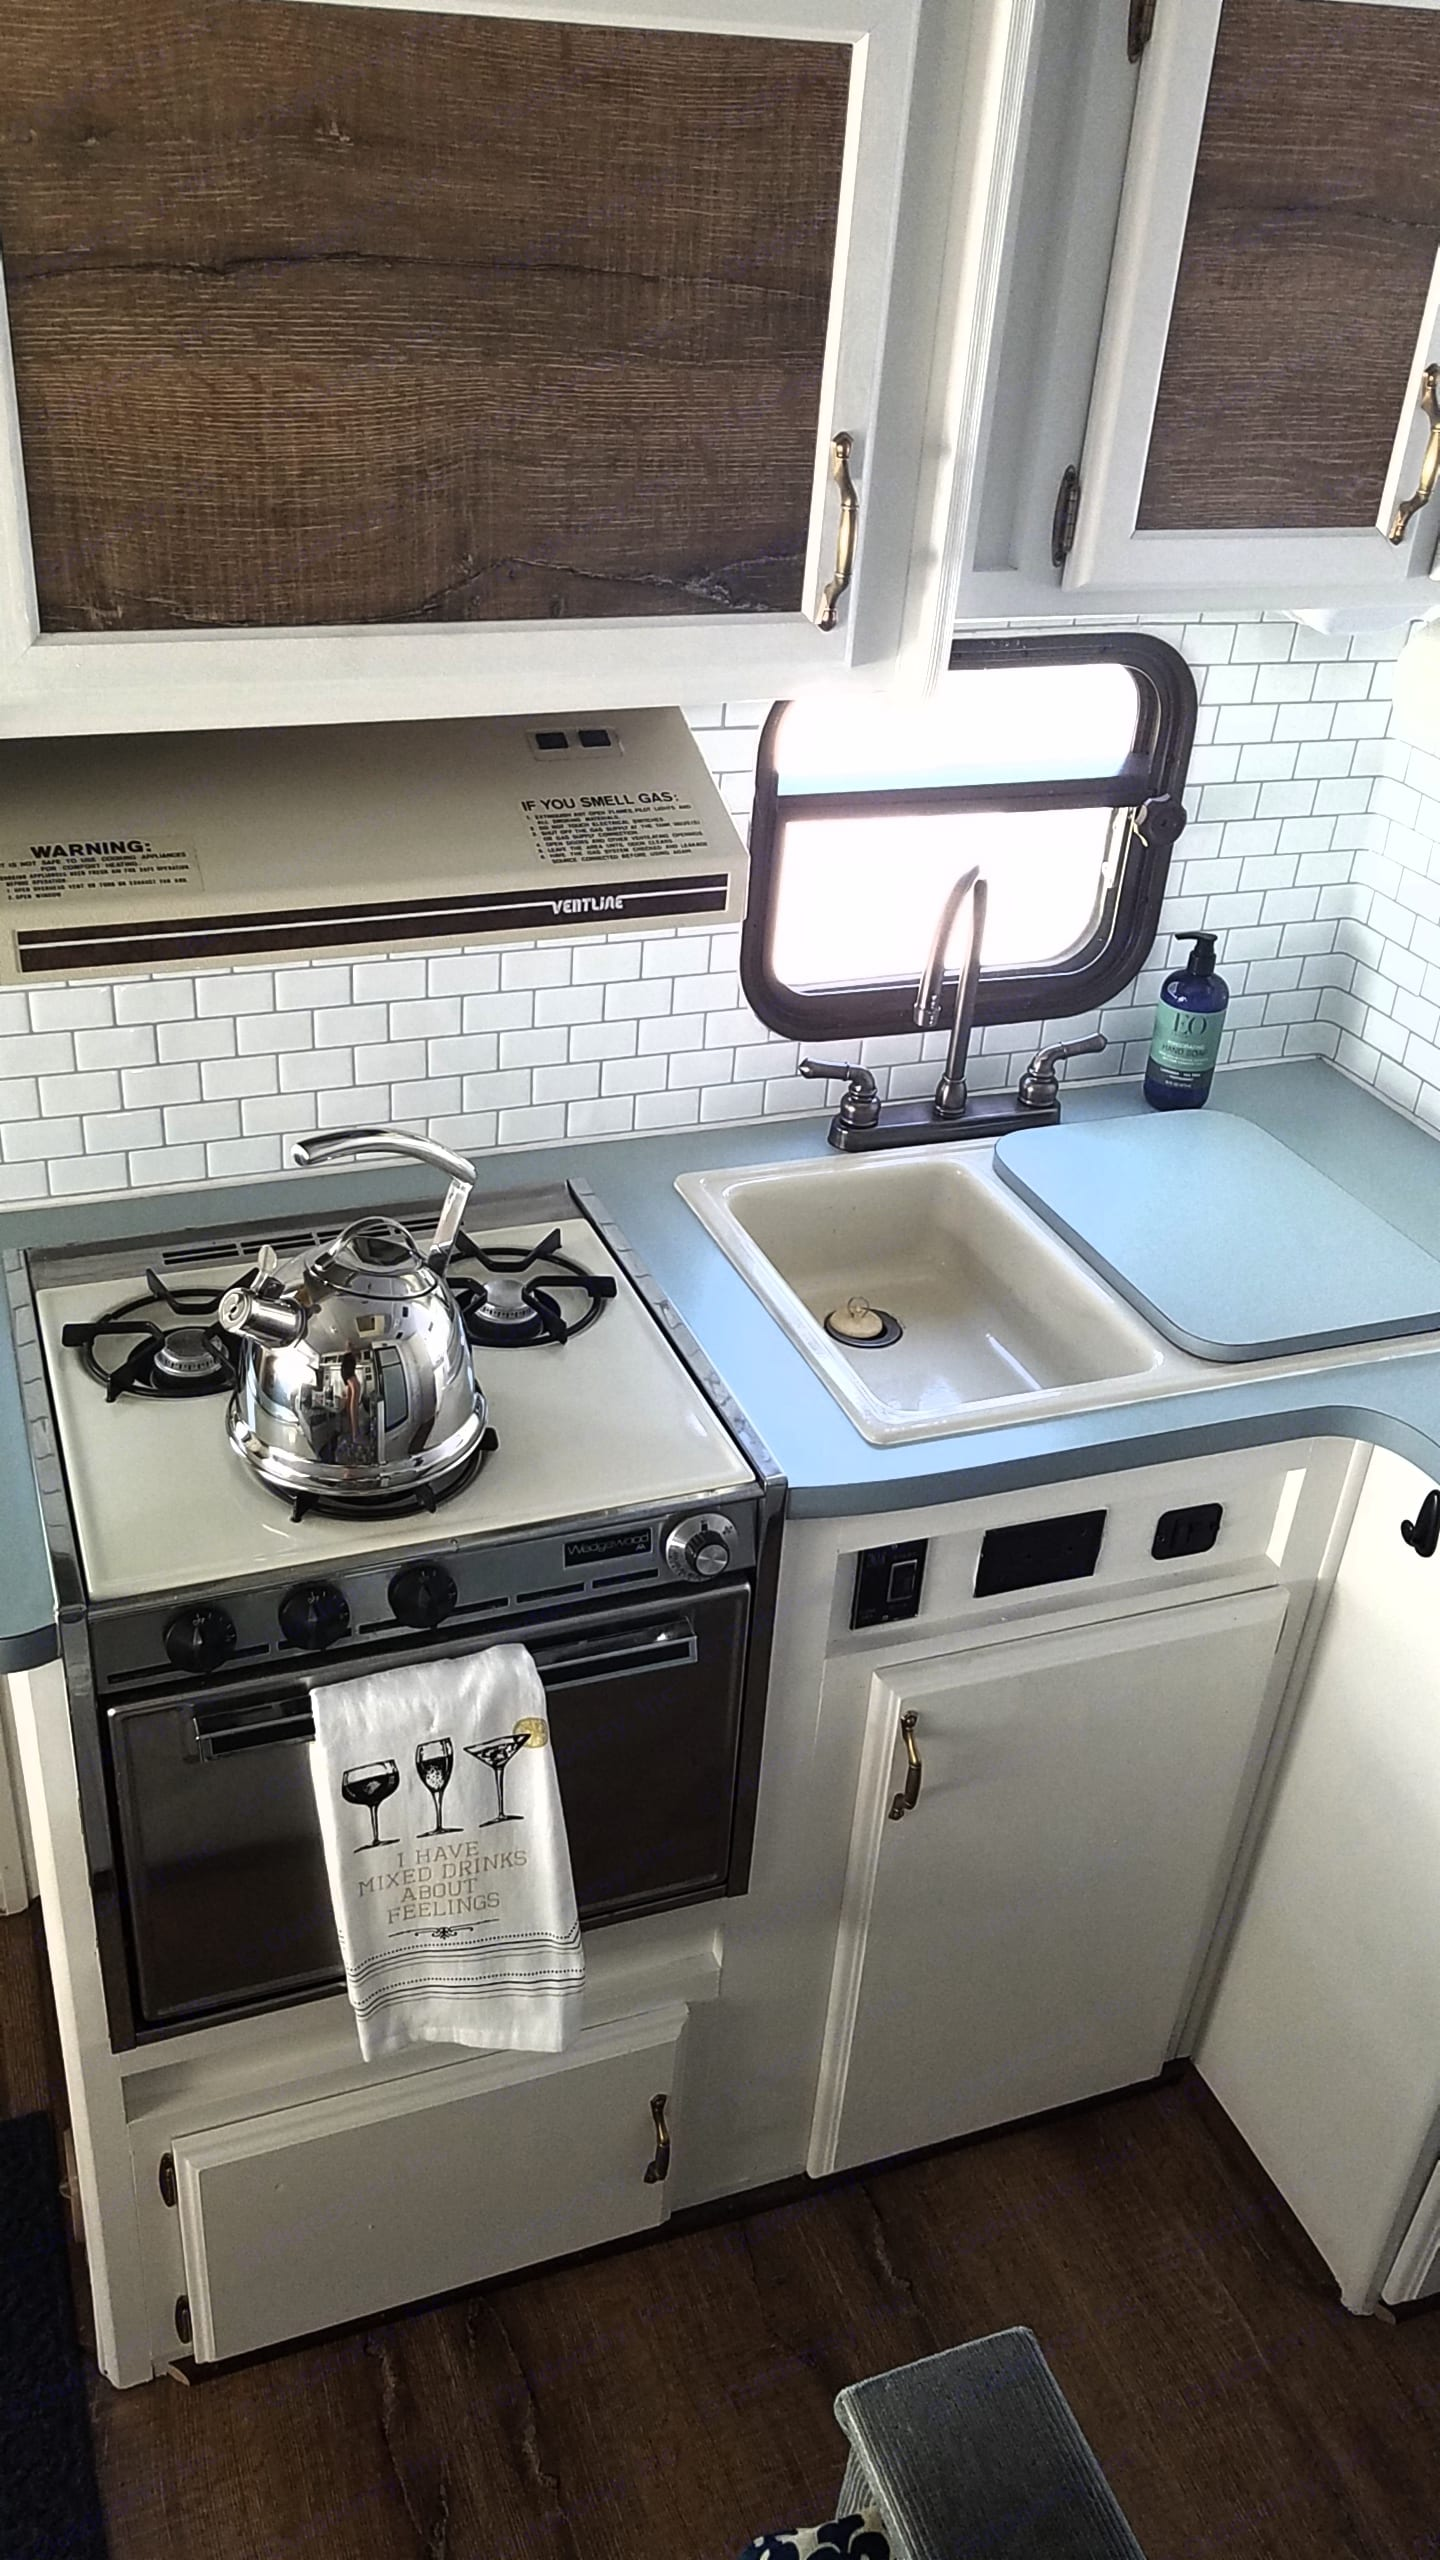 Original stove and oven works great. . Ford Mallard 1989